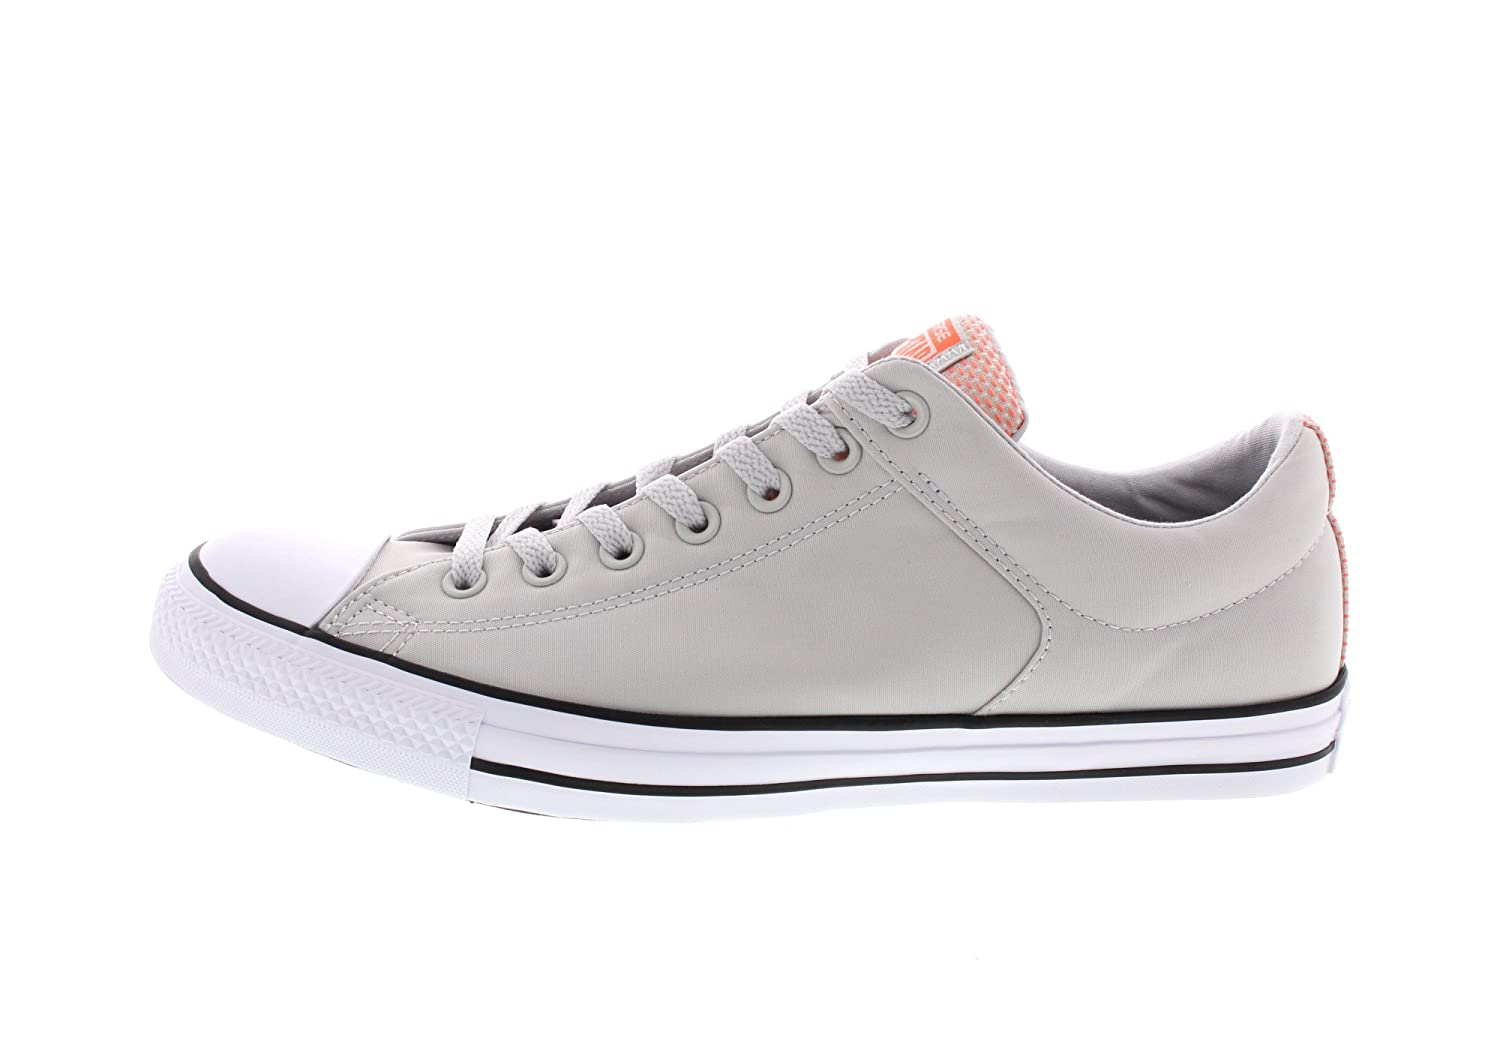 Converse - Ct High Street Ox 155478c Mouse, Taille:46.5 Eu